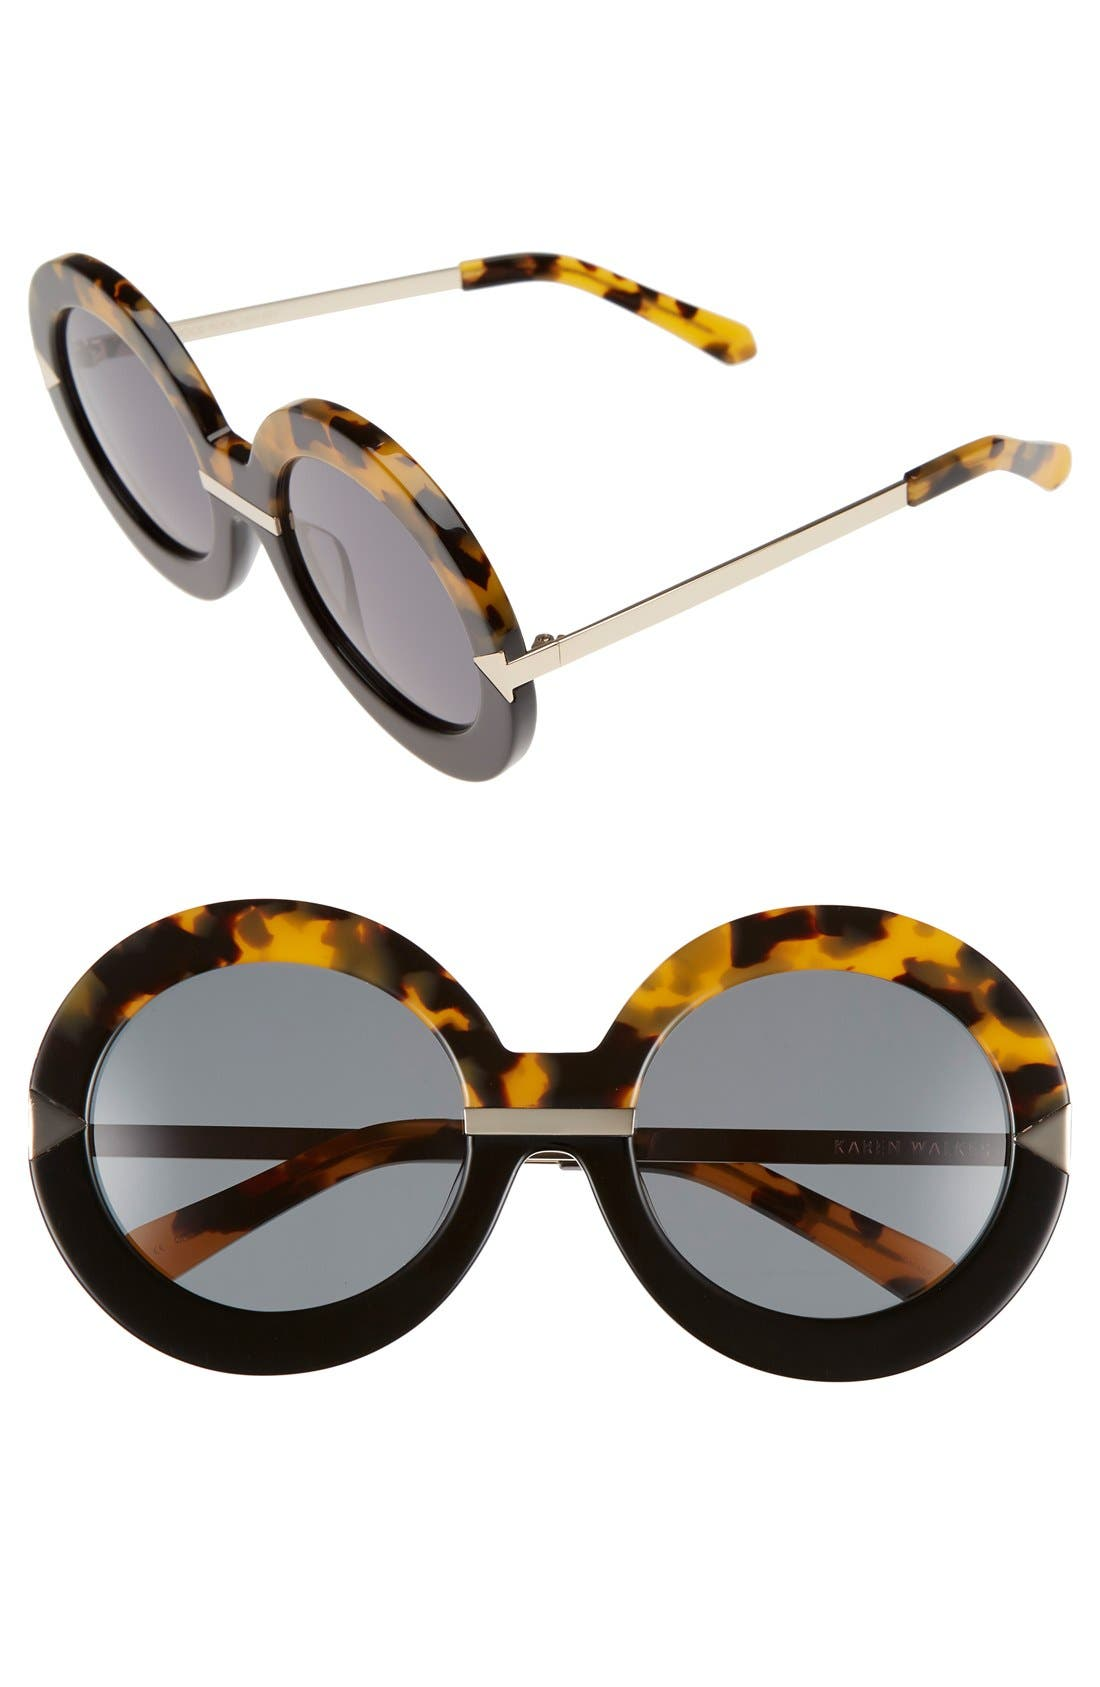 Karen Walker 'Hollywood Pool - Arrowed by Karen' 53mm Sunglasses